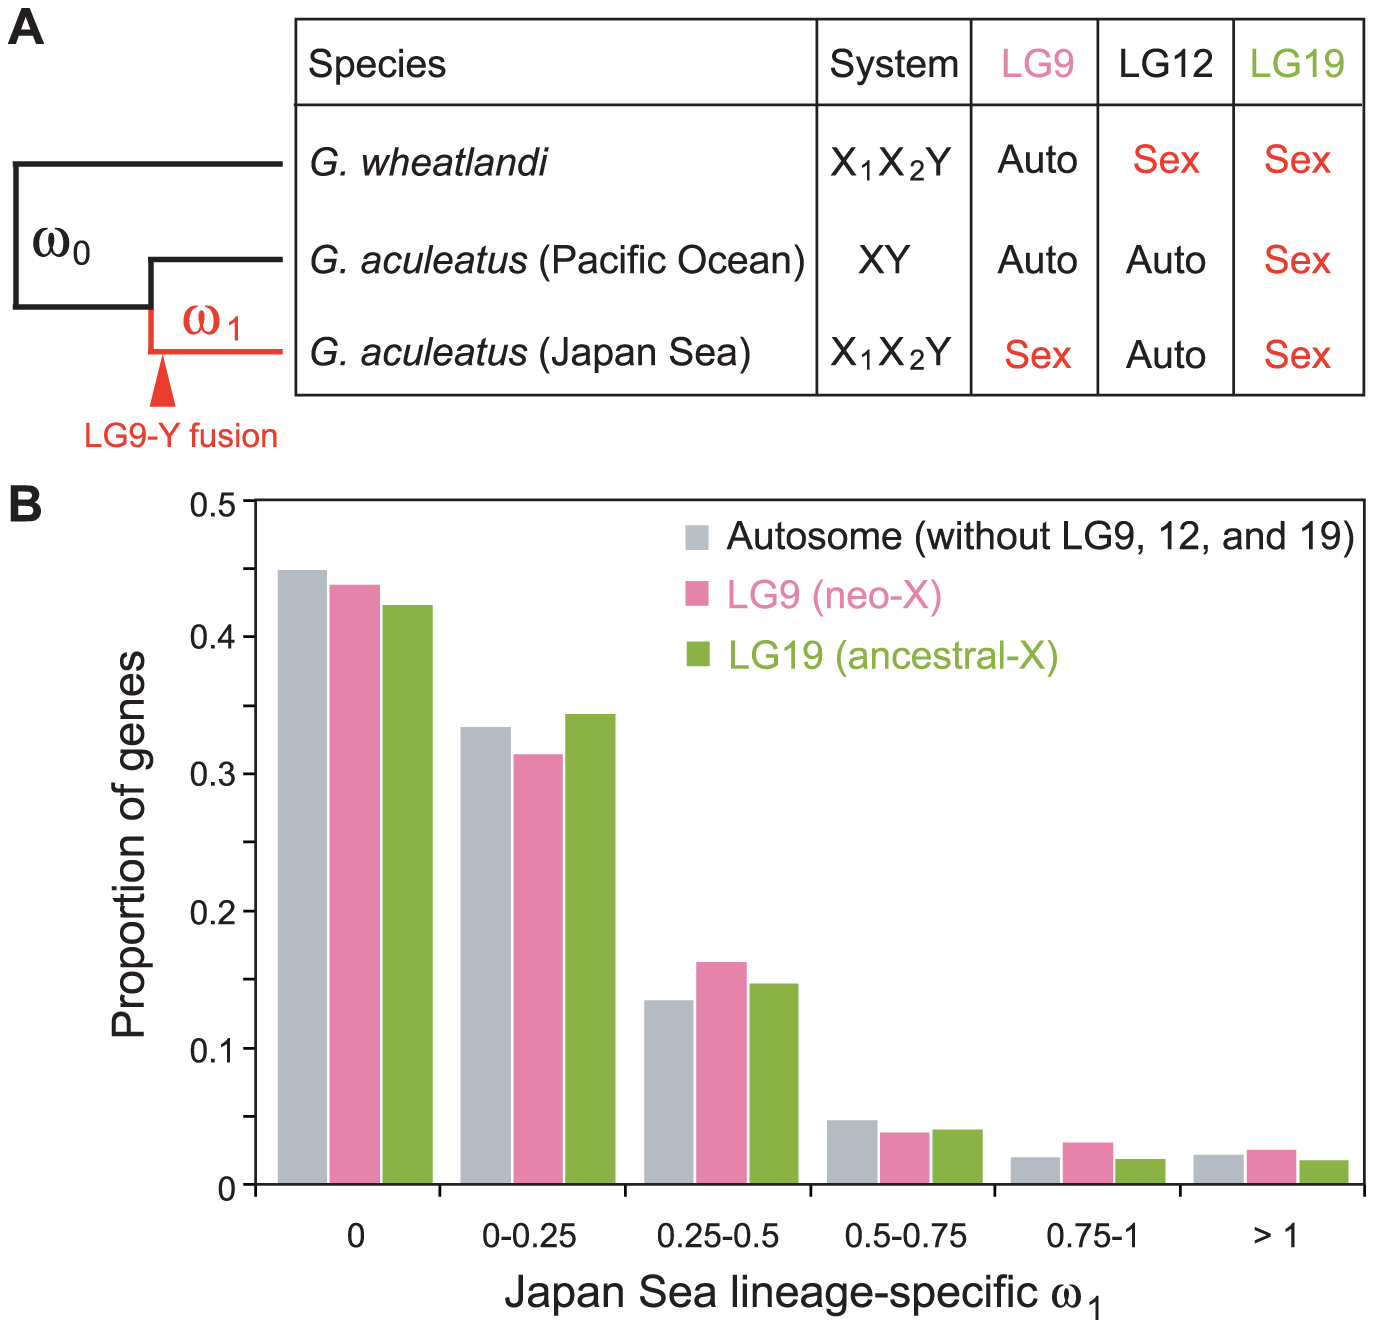 Faster protein sequence evolution of genes on LG9 in the Japan Sea lineage.